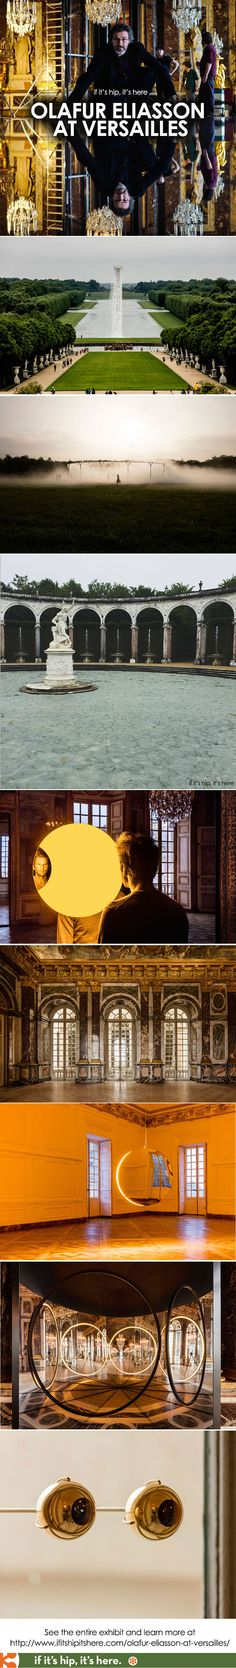 Artist Olafur Eliasson takes over the Palace of Versailles. Here's a look at the entire exhibit.